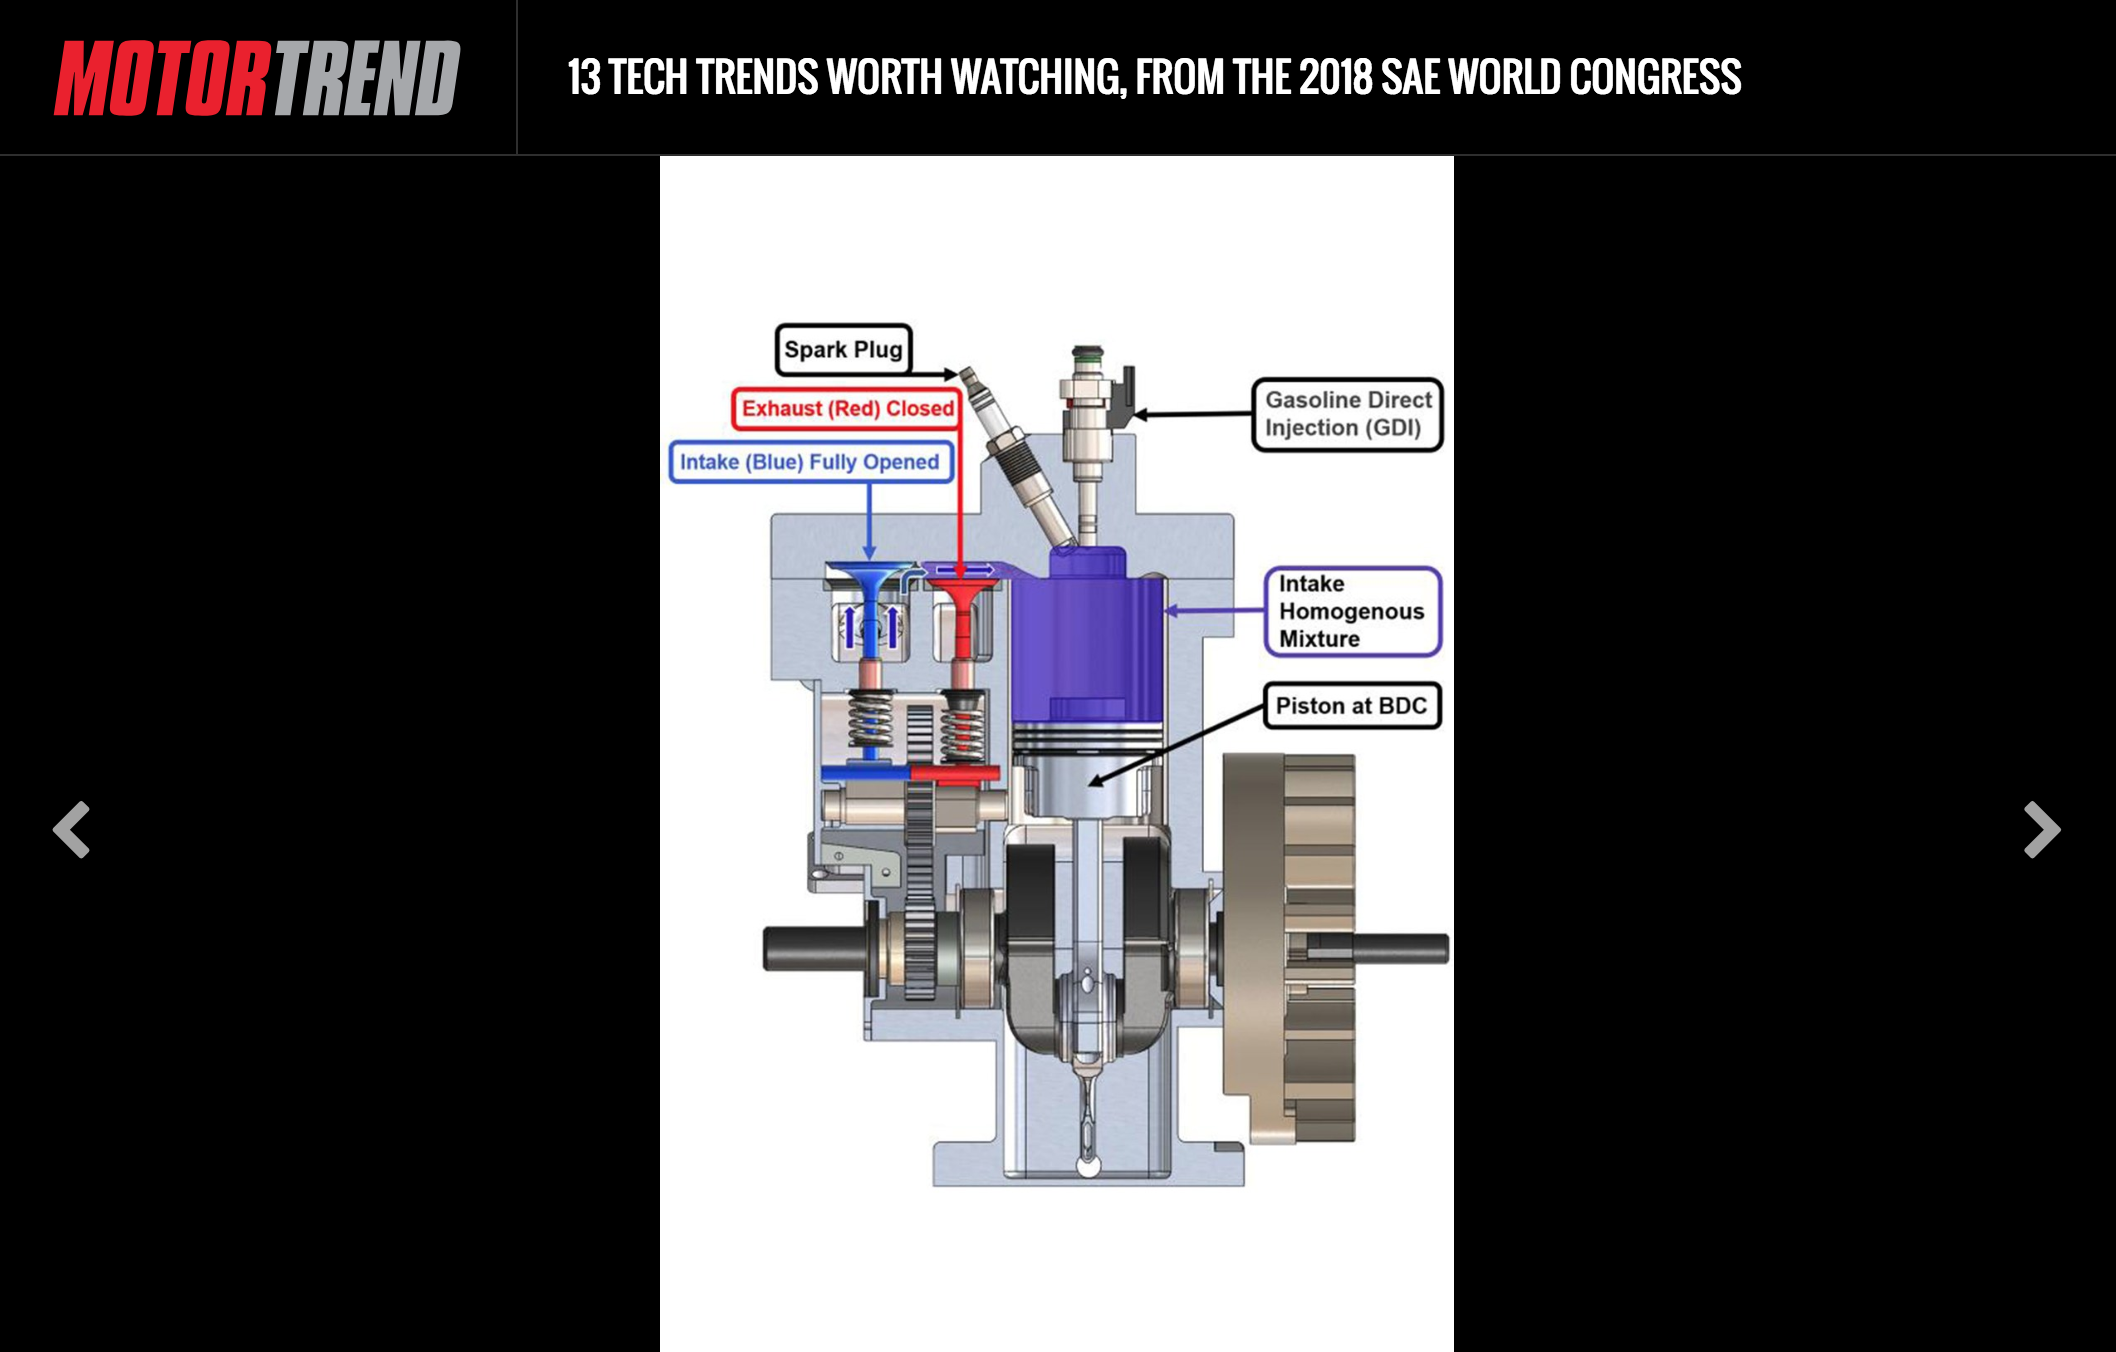 Motor Trend Article, April 2018 - 13 TECH TRENDS WORTH WATCHING, FROM THE 2018 SAE WORLD CONGRESS